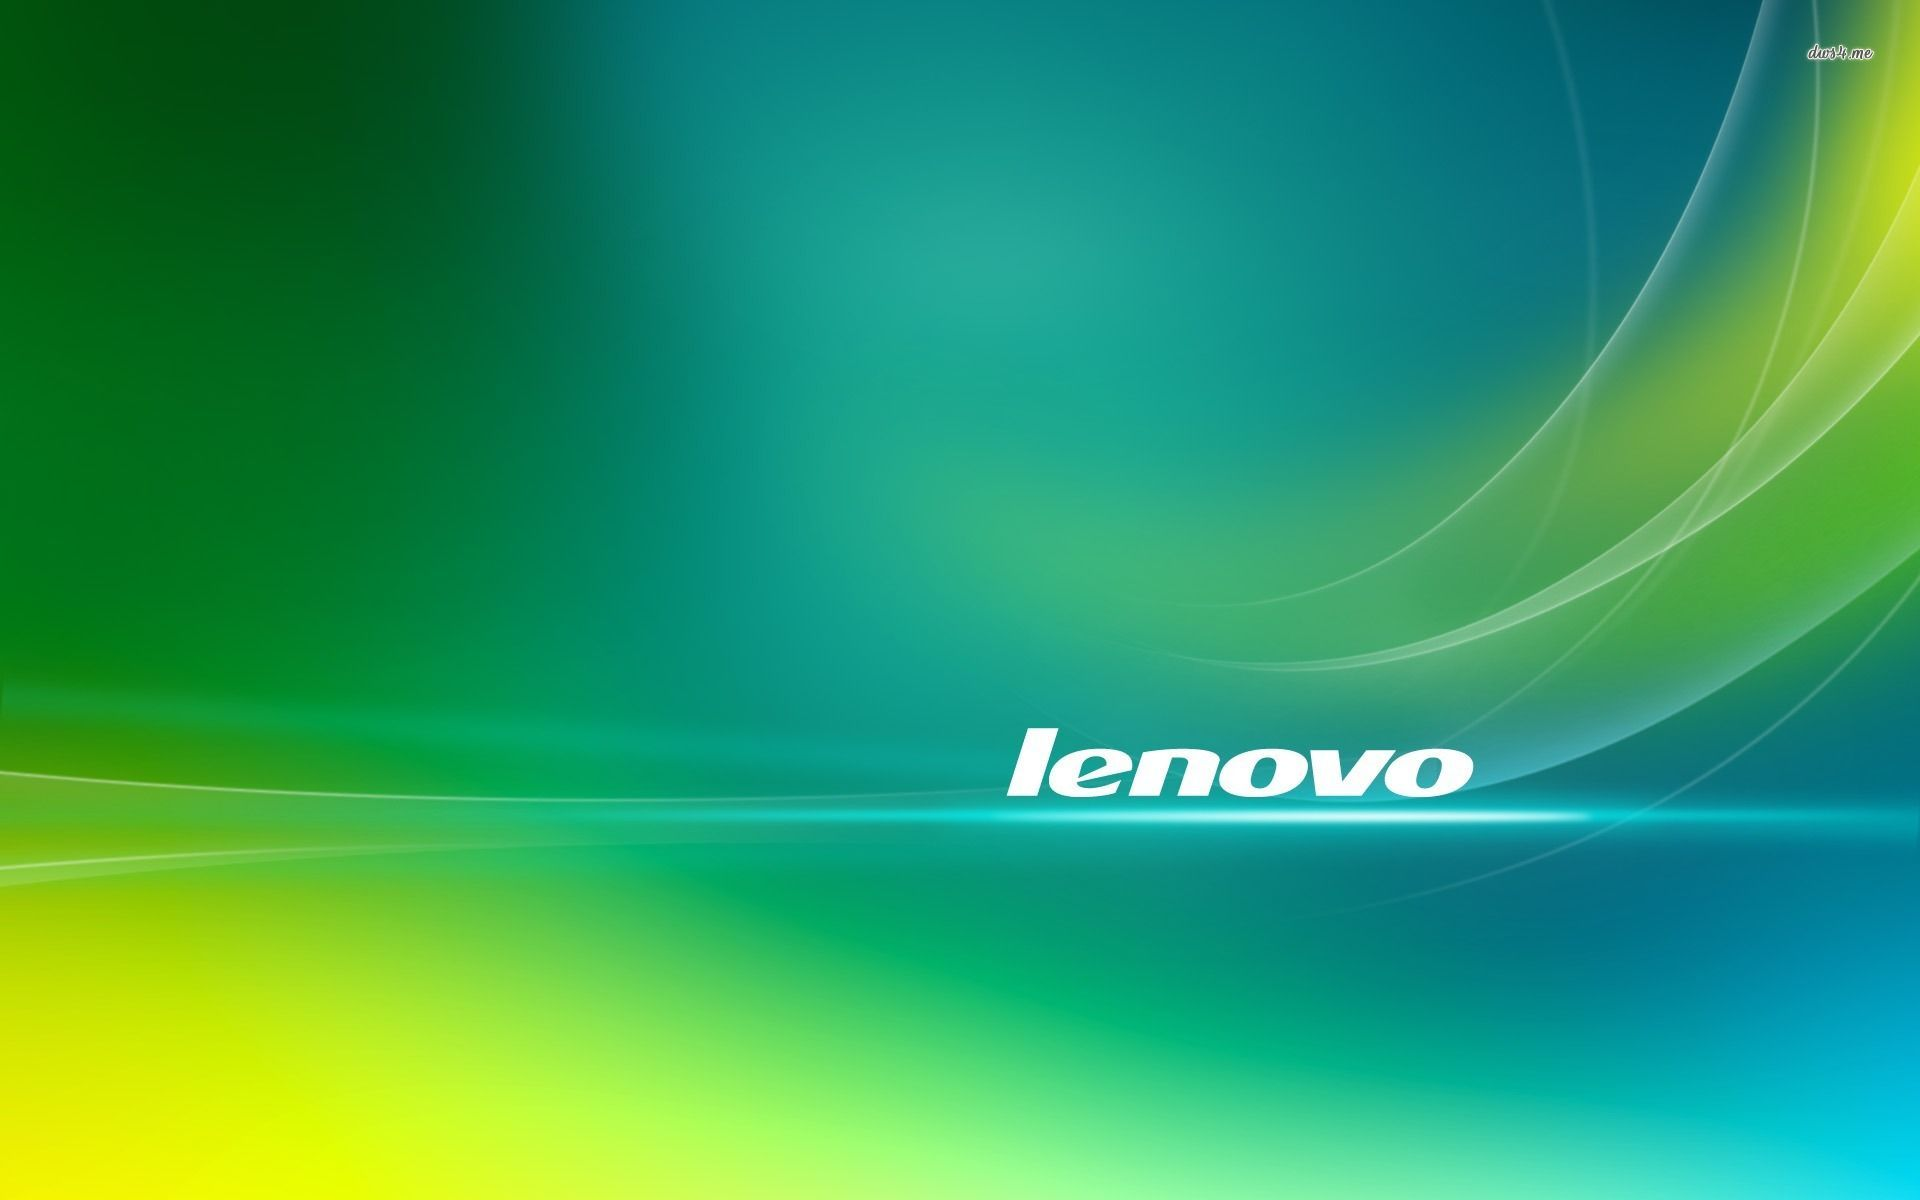 Download Lenovo Wallpapers Page 1920 1080 Download Lenovo Wallpapers 37 Wallpapers Adorable Wallpapers Lenovo Wallpapers Lenovo Hd Wallpapers For Laptop